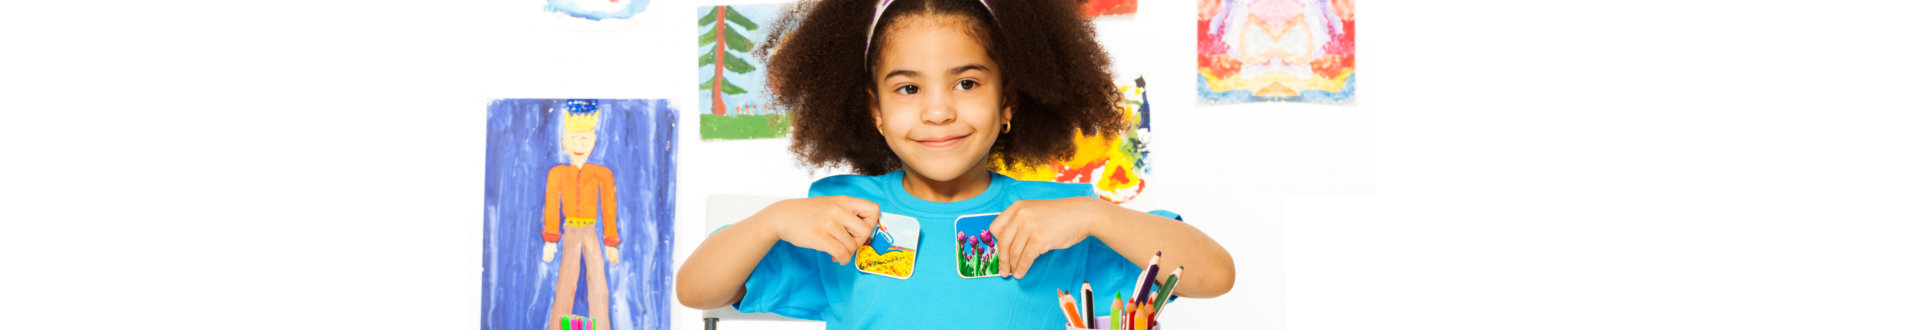 Cute African girl playing developmental game holding cards matching relation by table sitting in playroom